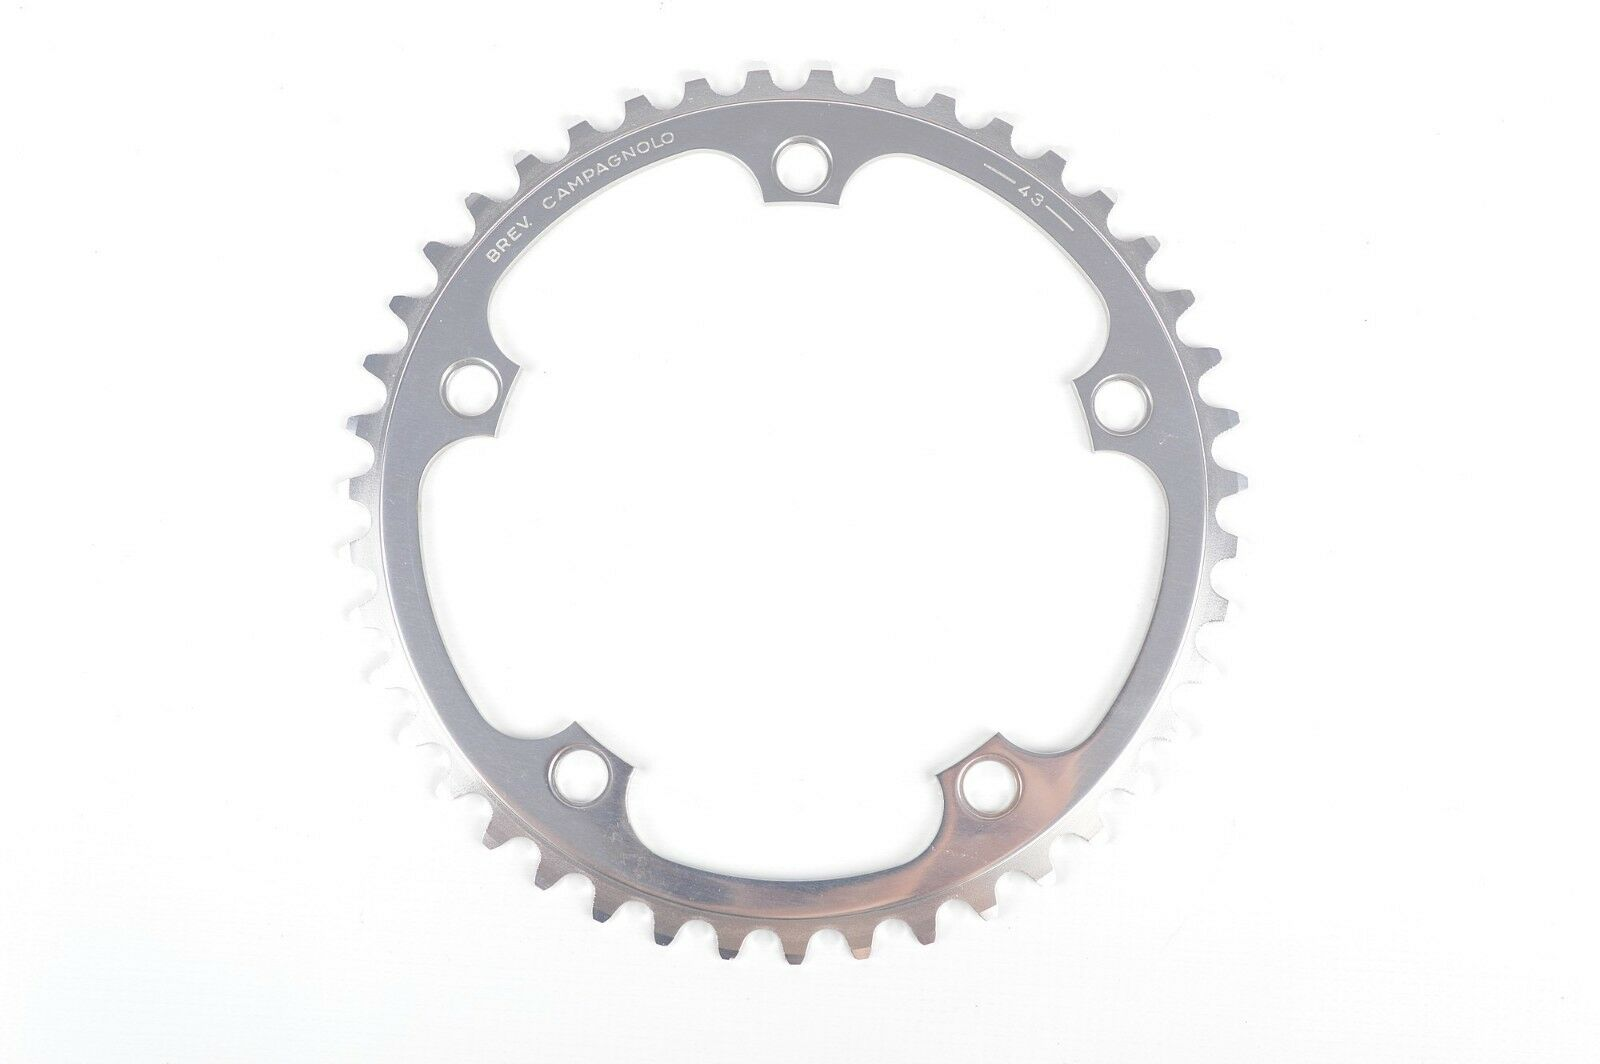 Vintage Campagnolo Road Bicycle Chainring 43T 135  BCD For Campagnolo Crankset  clearance up to 70%